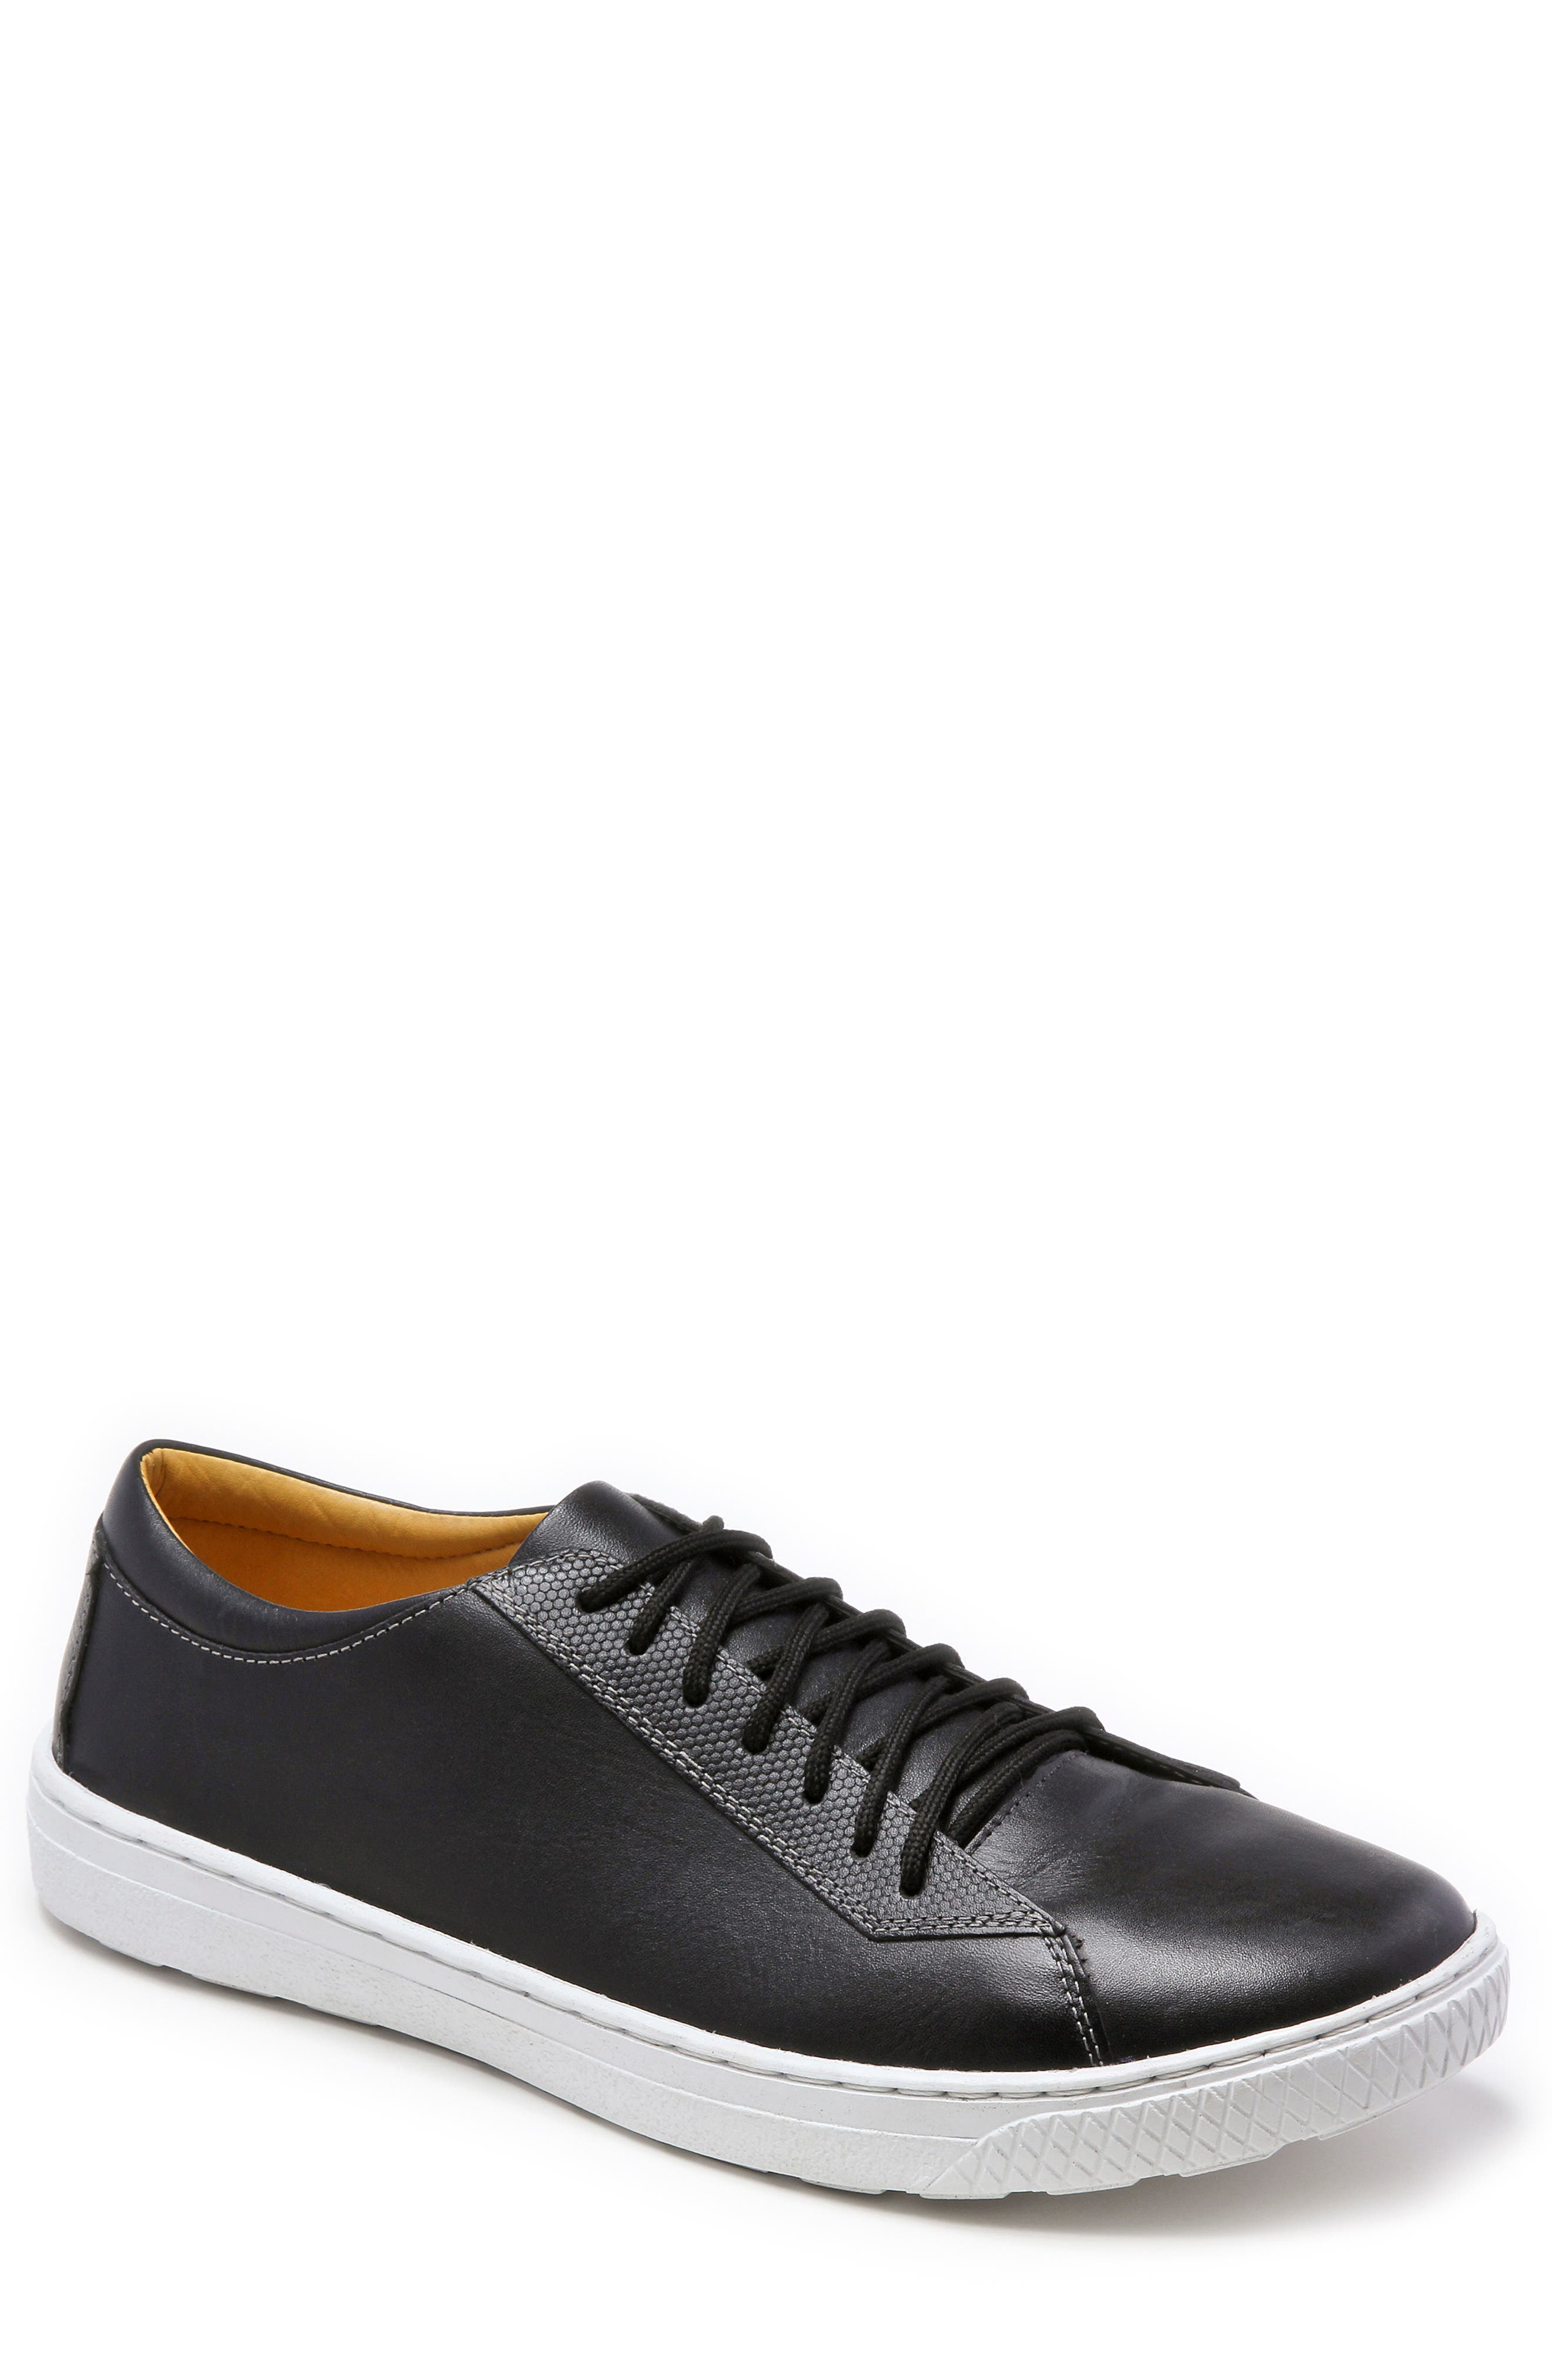 Minh Low Top Sneaker,                         Main,                         color, BLACK LEATHER